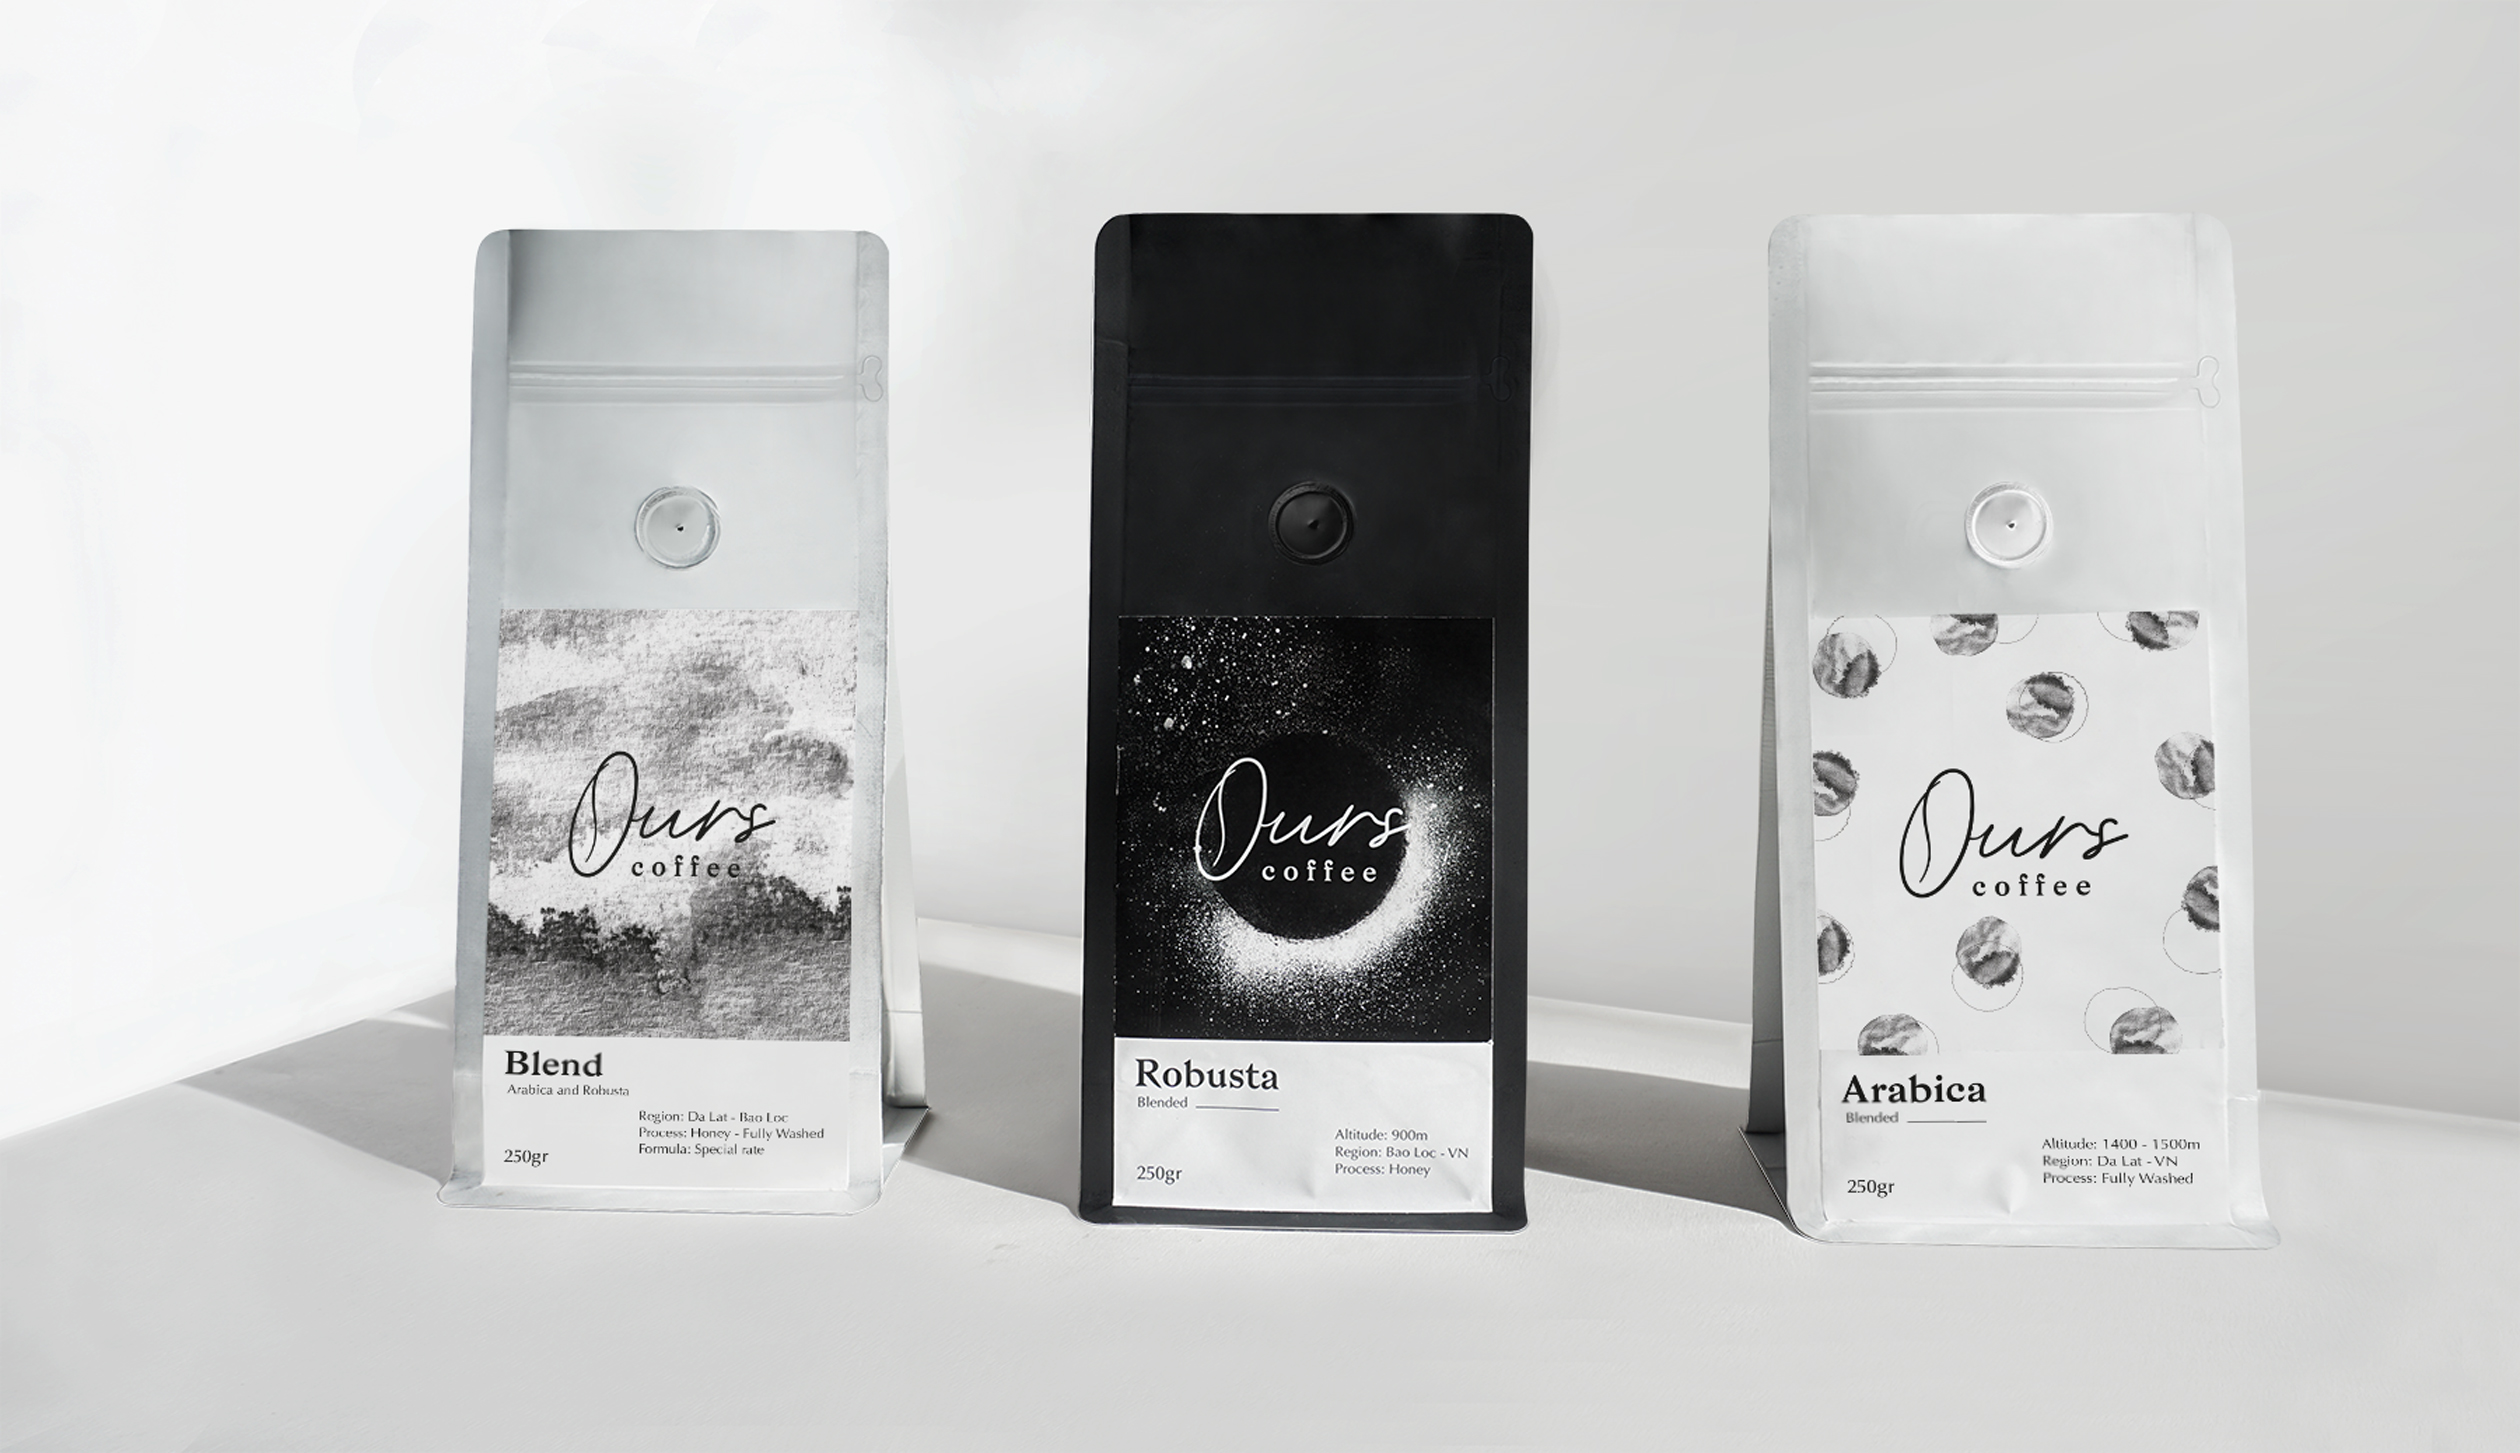 Ours Coffee Visual Identity Design by Gemini Can